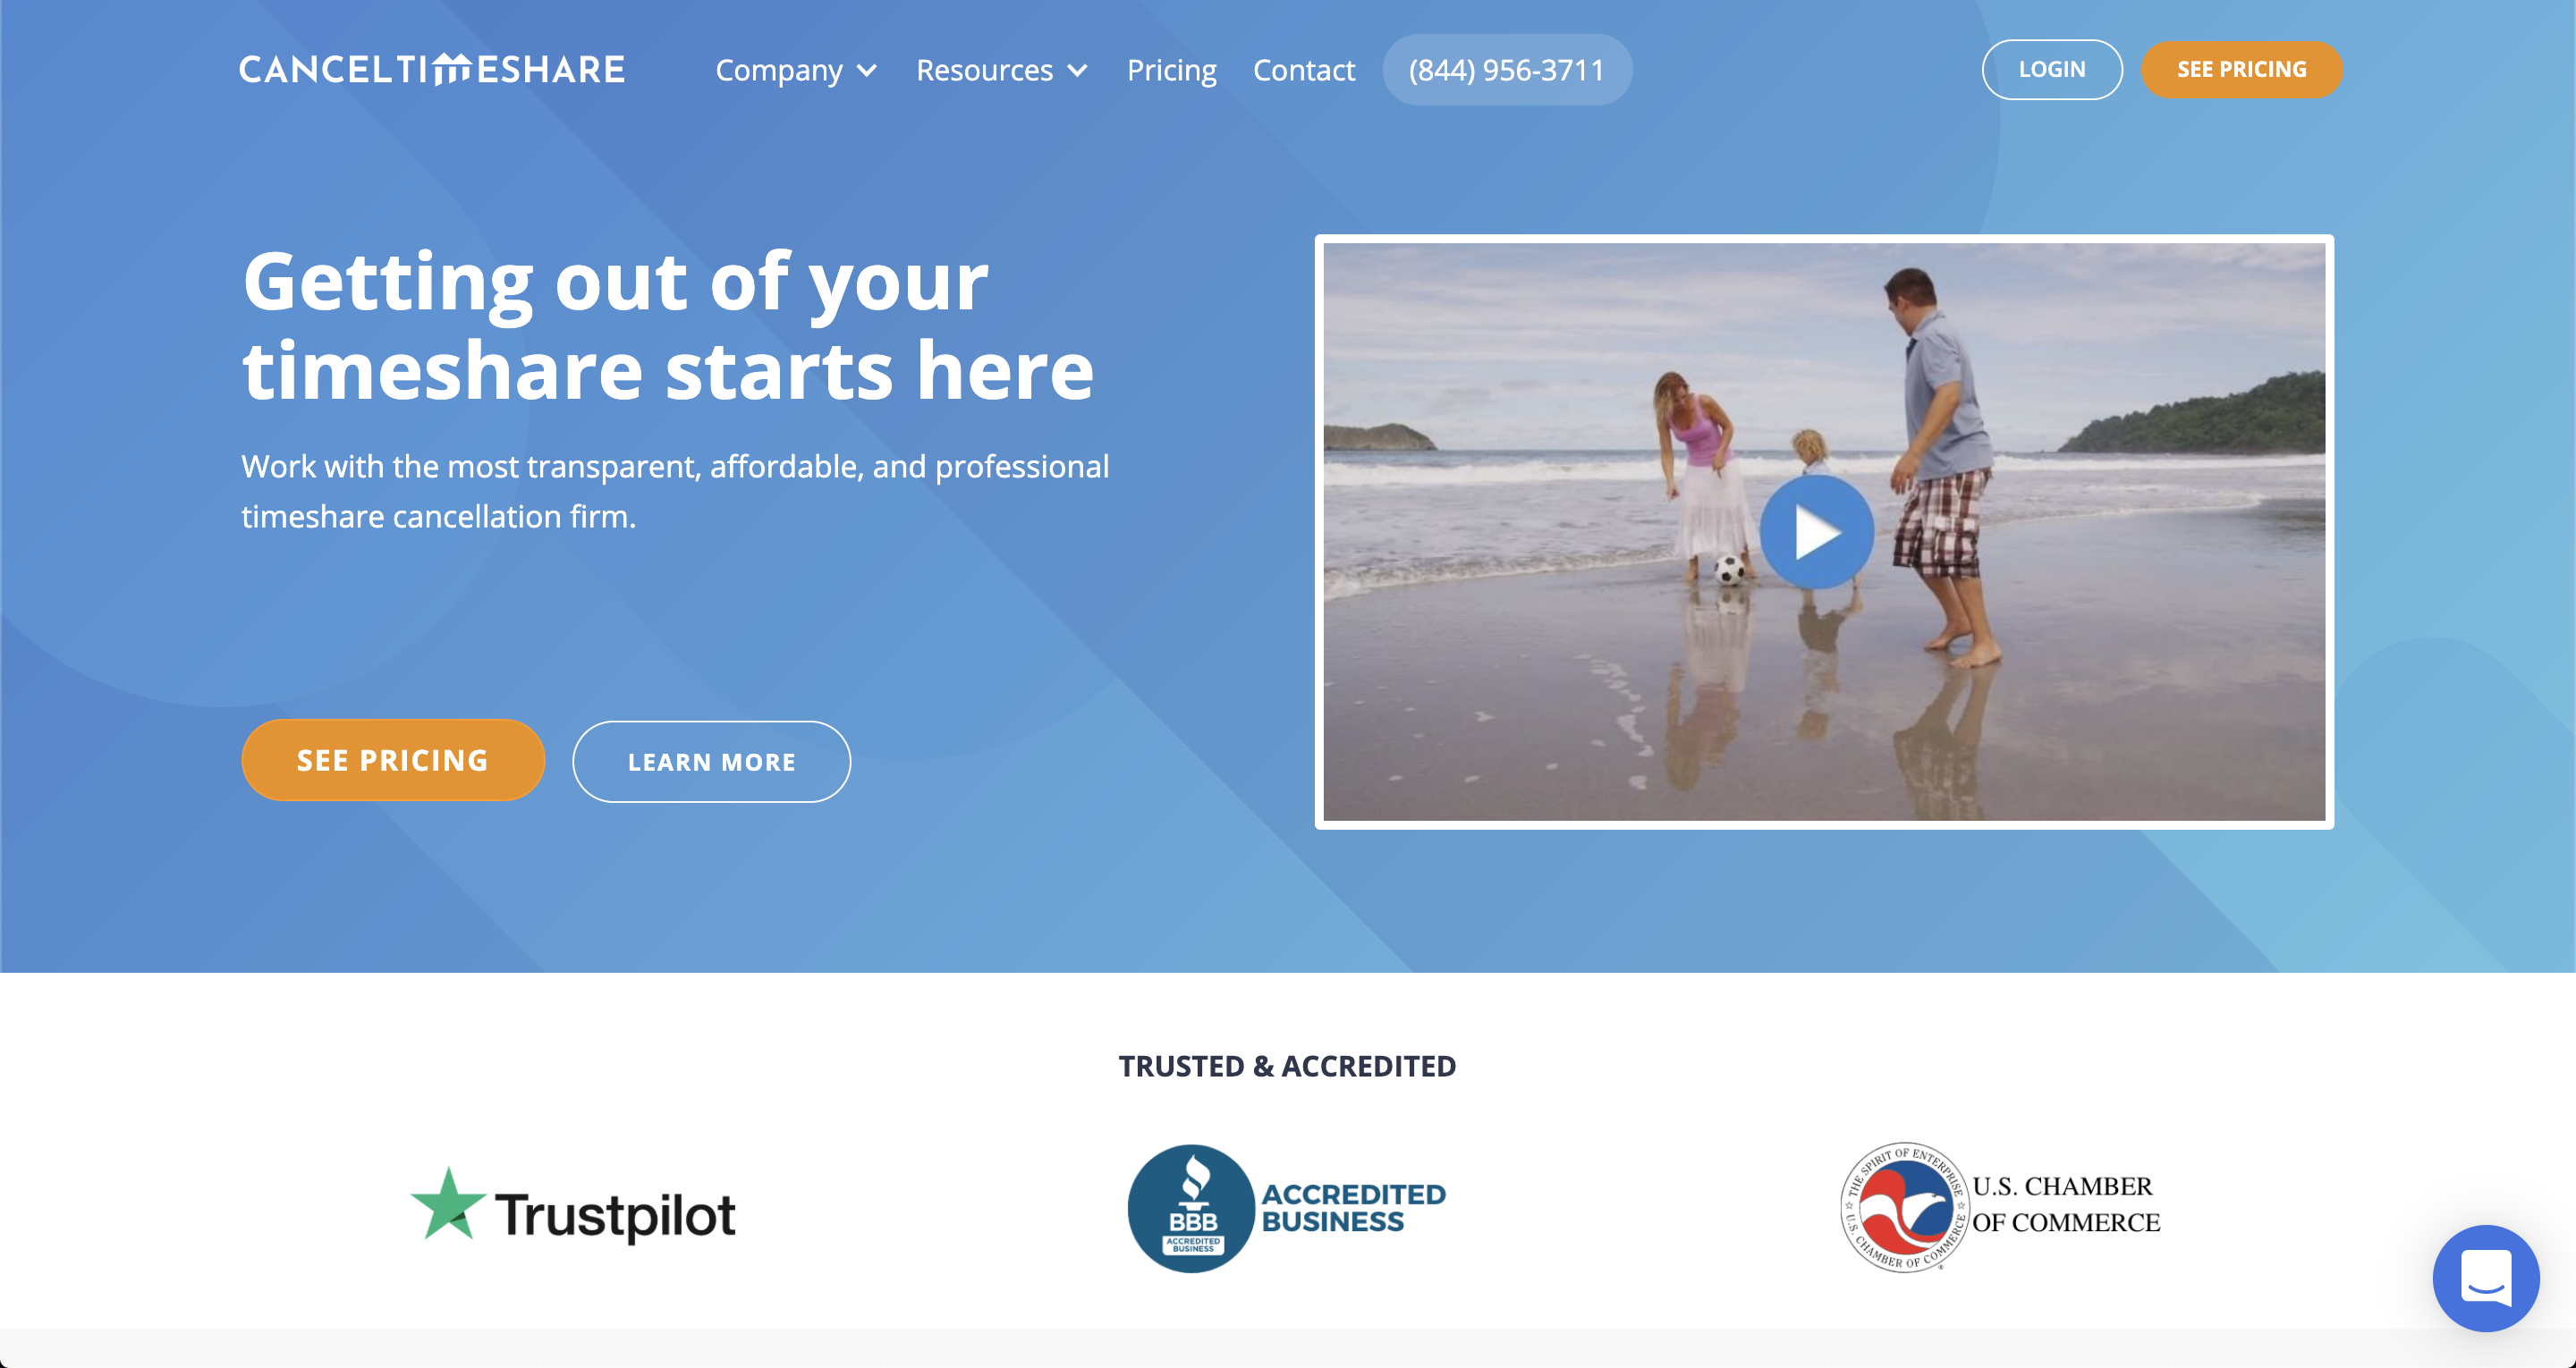 cancel timeshare landing page